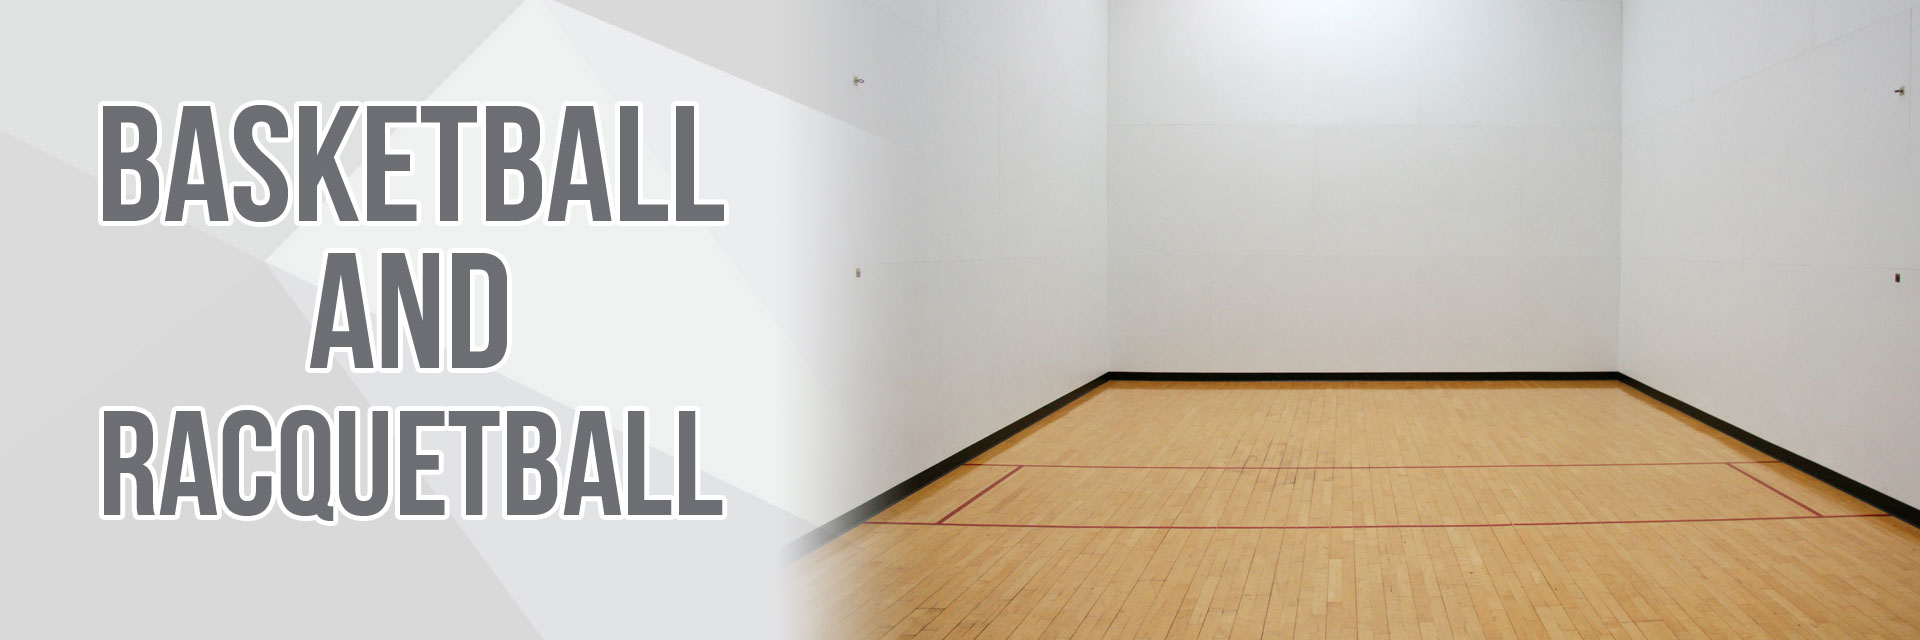 Basketball and Racquetball